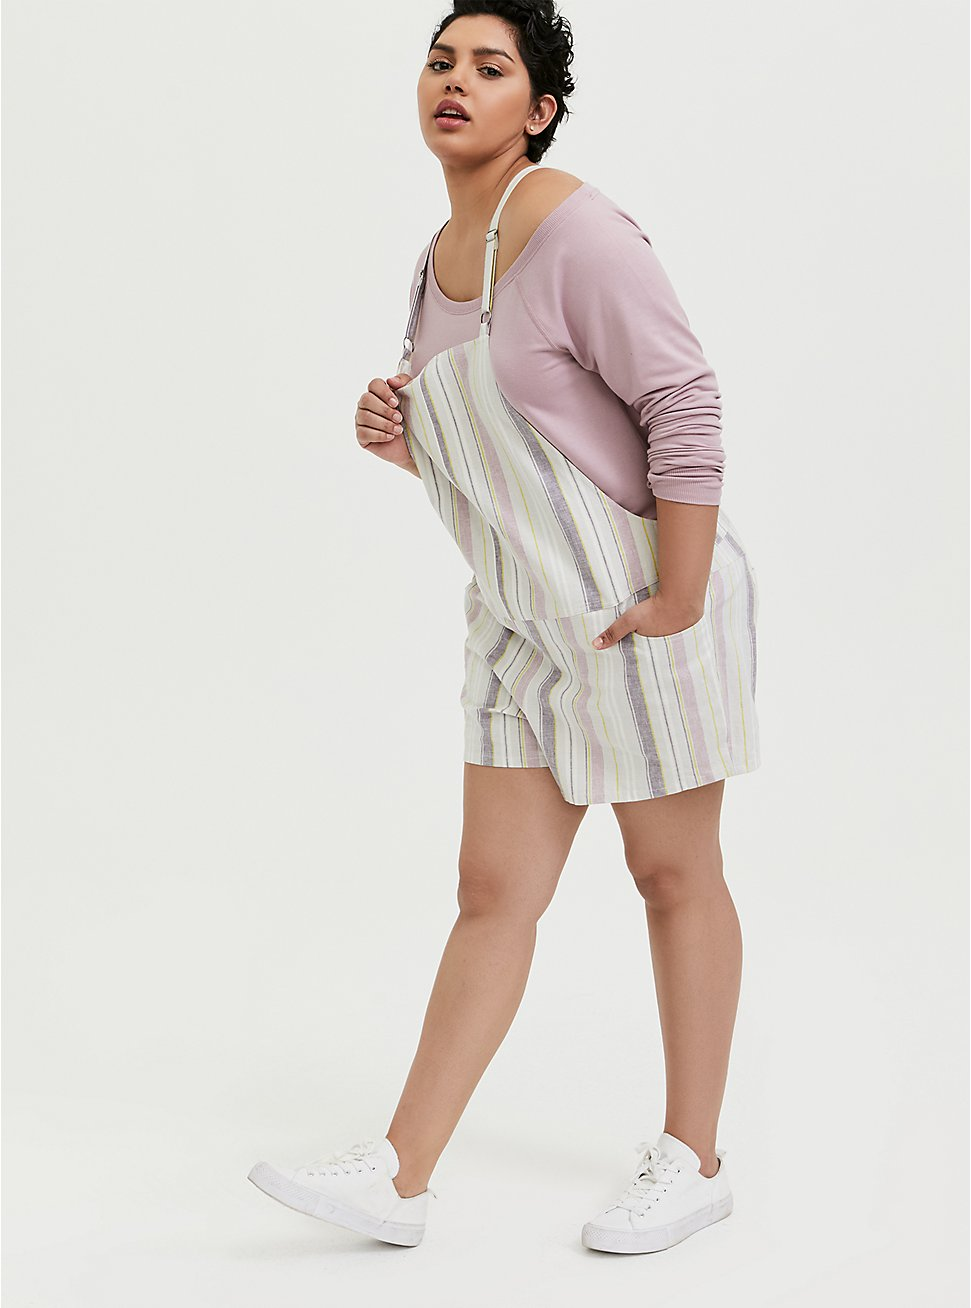 Shortall - Linen Multi Stripe & White, STRIPES, hi-res